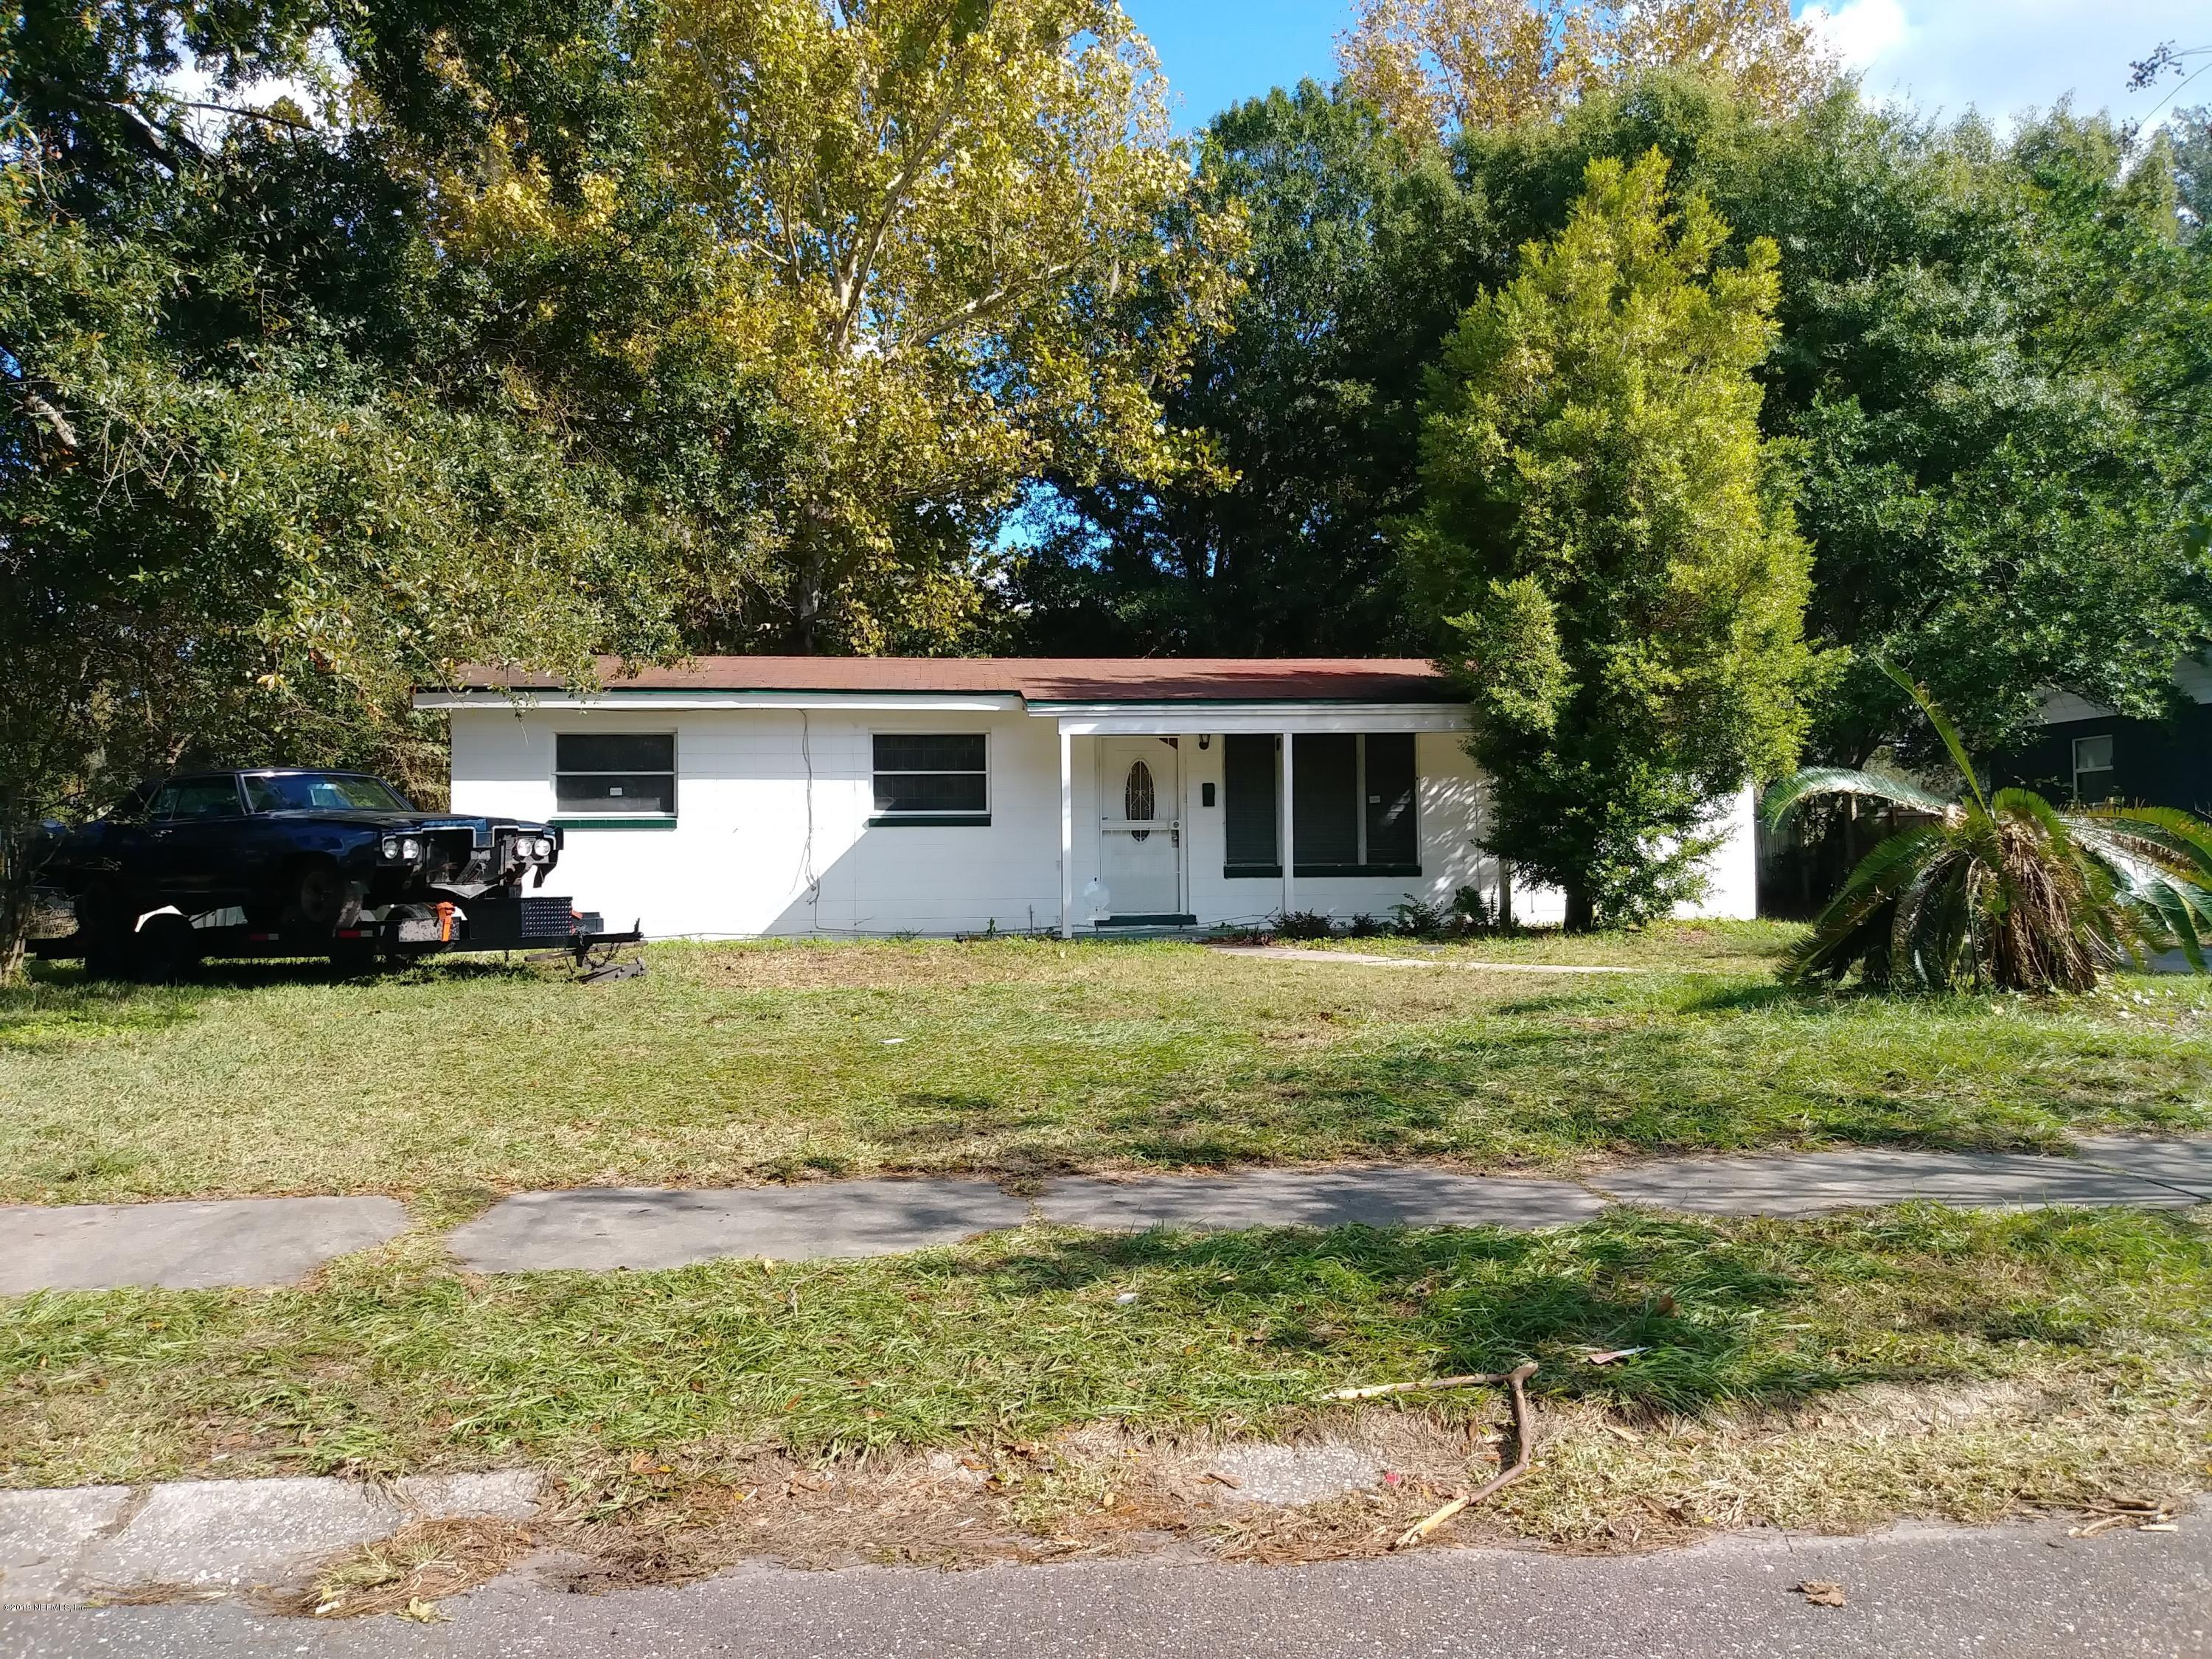 9205 SIBBALD, JACKSONVILLE, FLORIDA 32208, 3 Bedrooms Bedrooms, ,2 BathroomsBathrooms,Investment / MultiFamily,For sale,SIBBALD,1028707